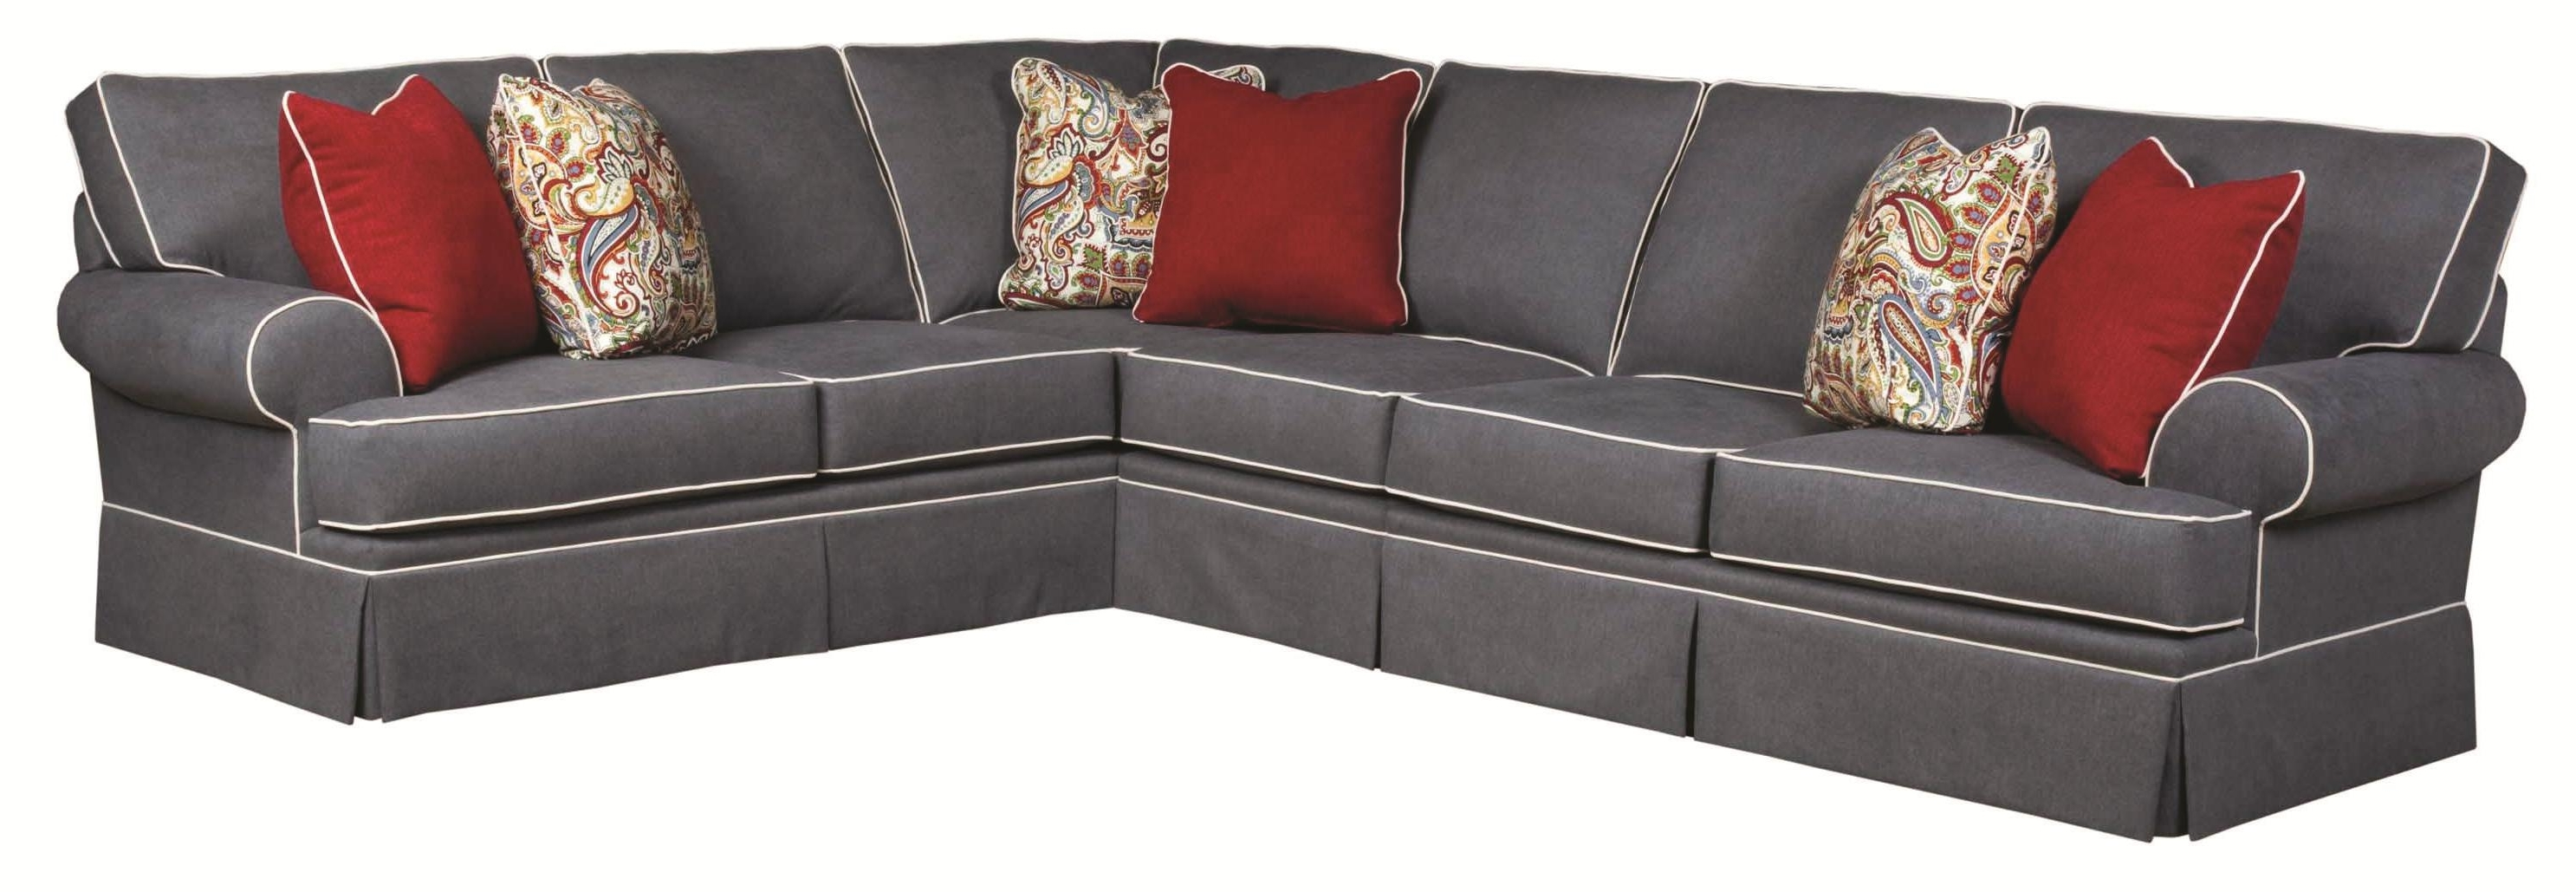 Newest Sectional Sofas At Broyhill Intended For Broyhill Furniture Emily Traditional 3 Piece Sectional Sofa With (View 8 of 15)